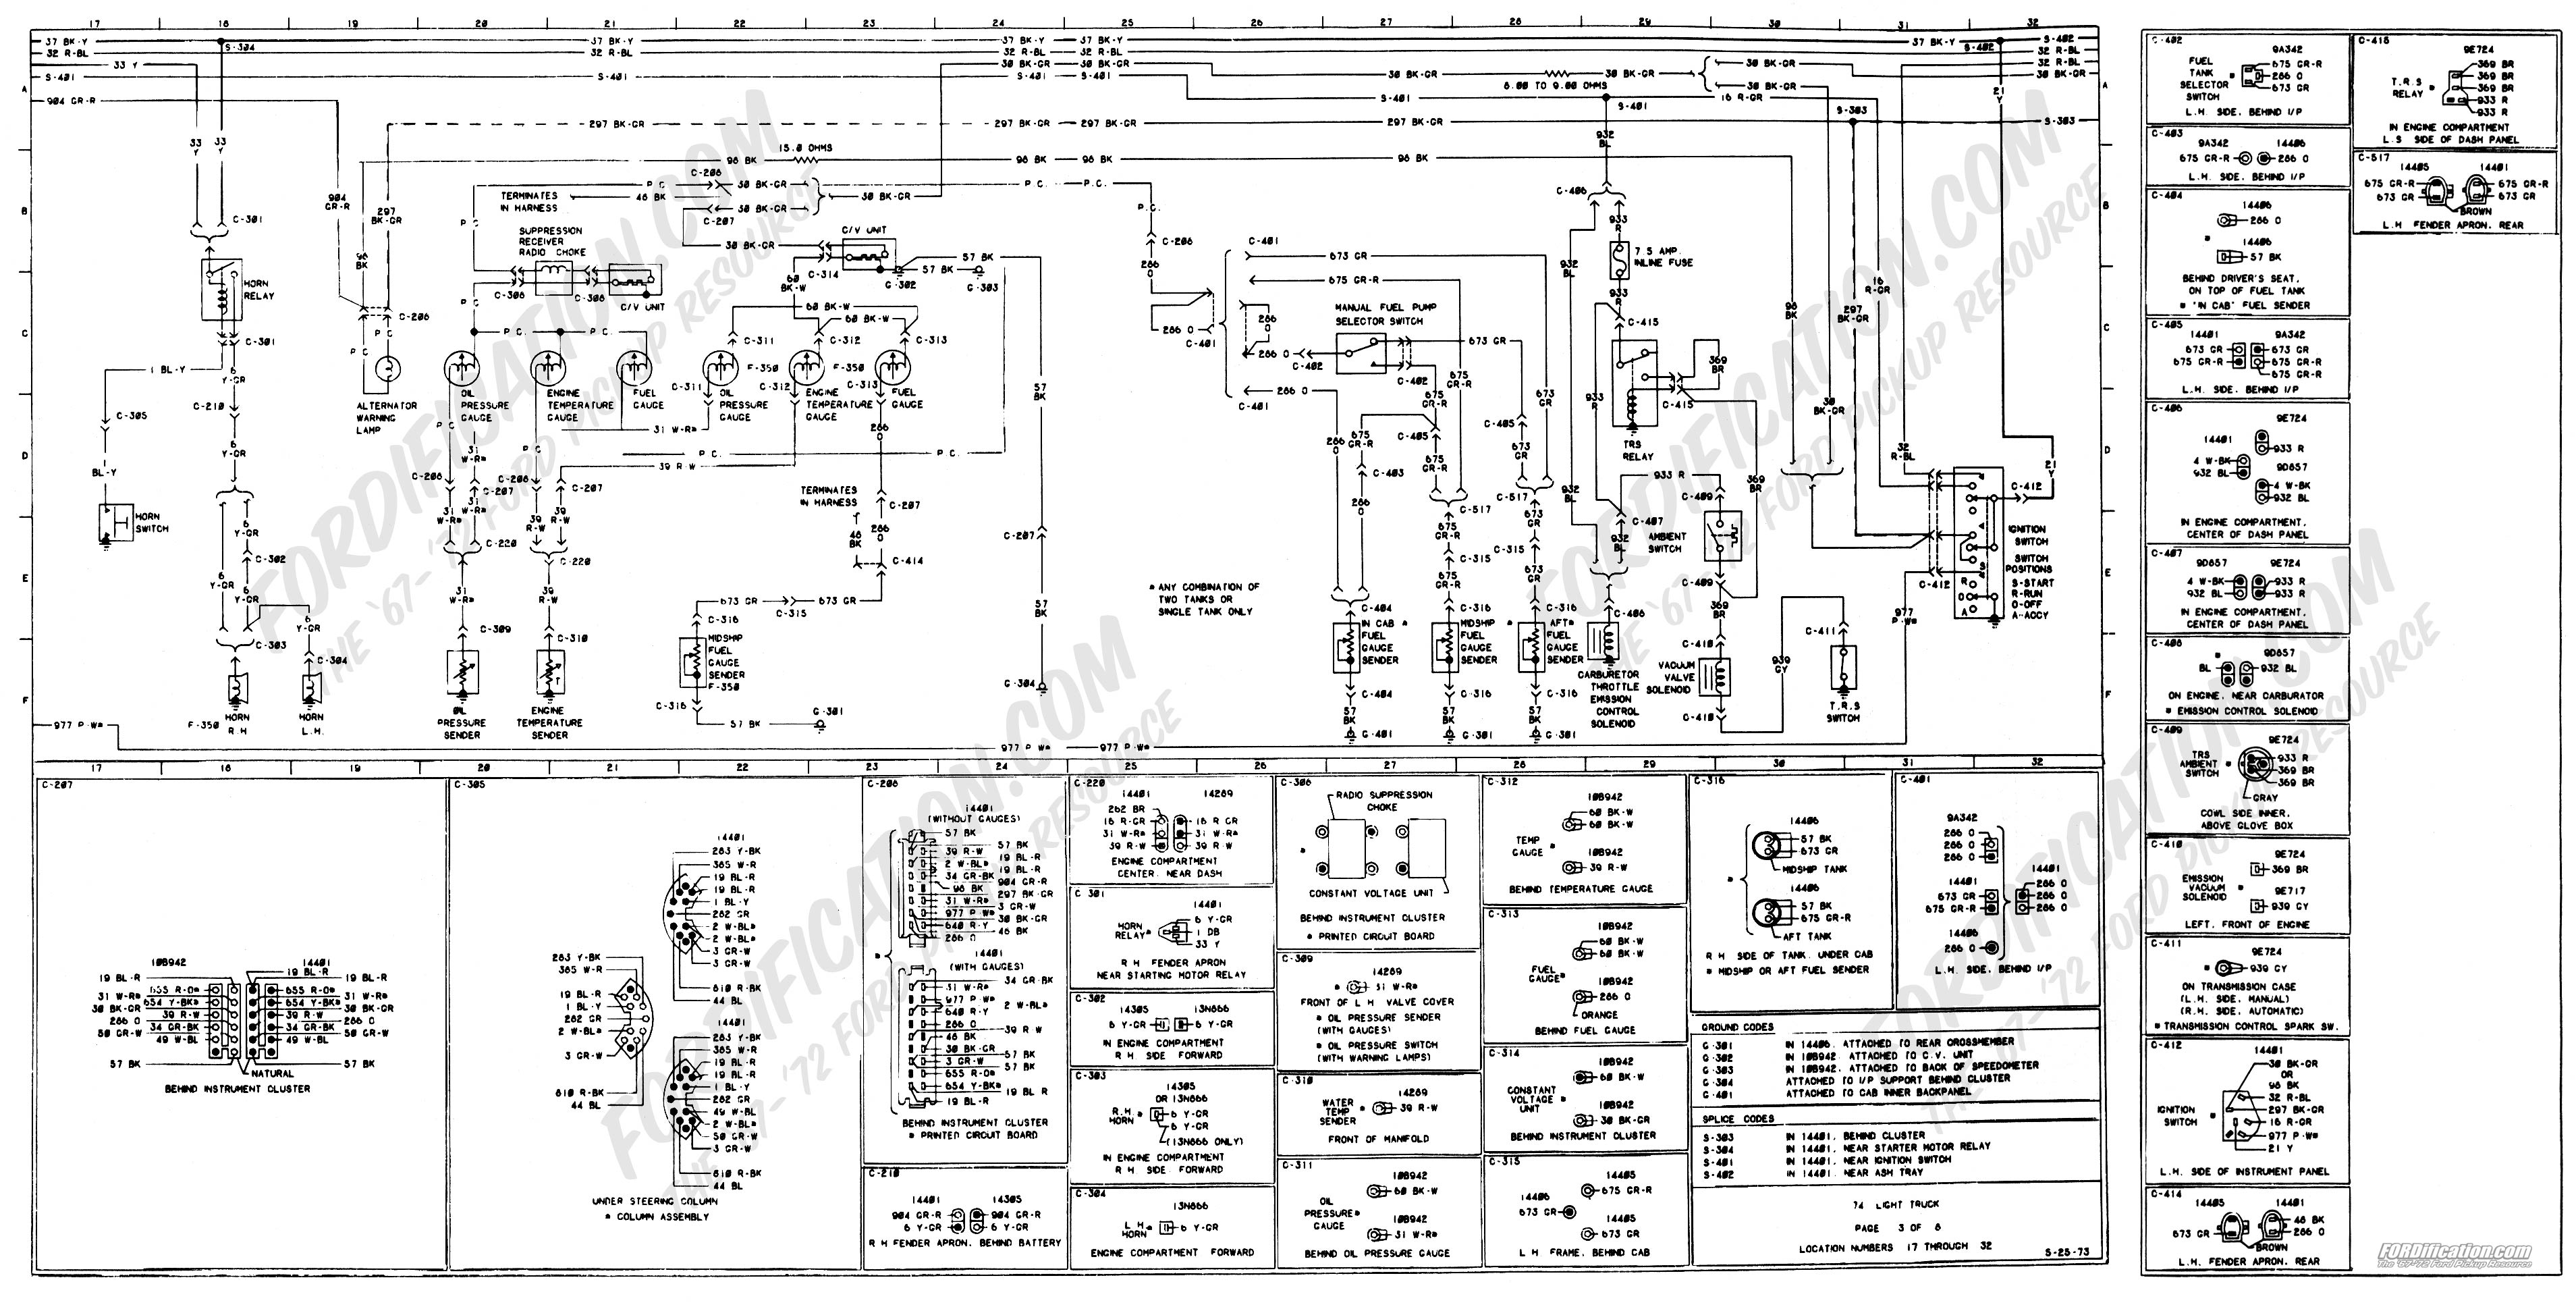 1973 1979 ford truck wiring diagrams schematics fordification net rh fordification net ford wiring harness diagrams 1967 bronco ford wiring harness diagram